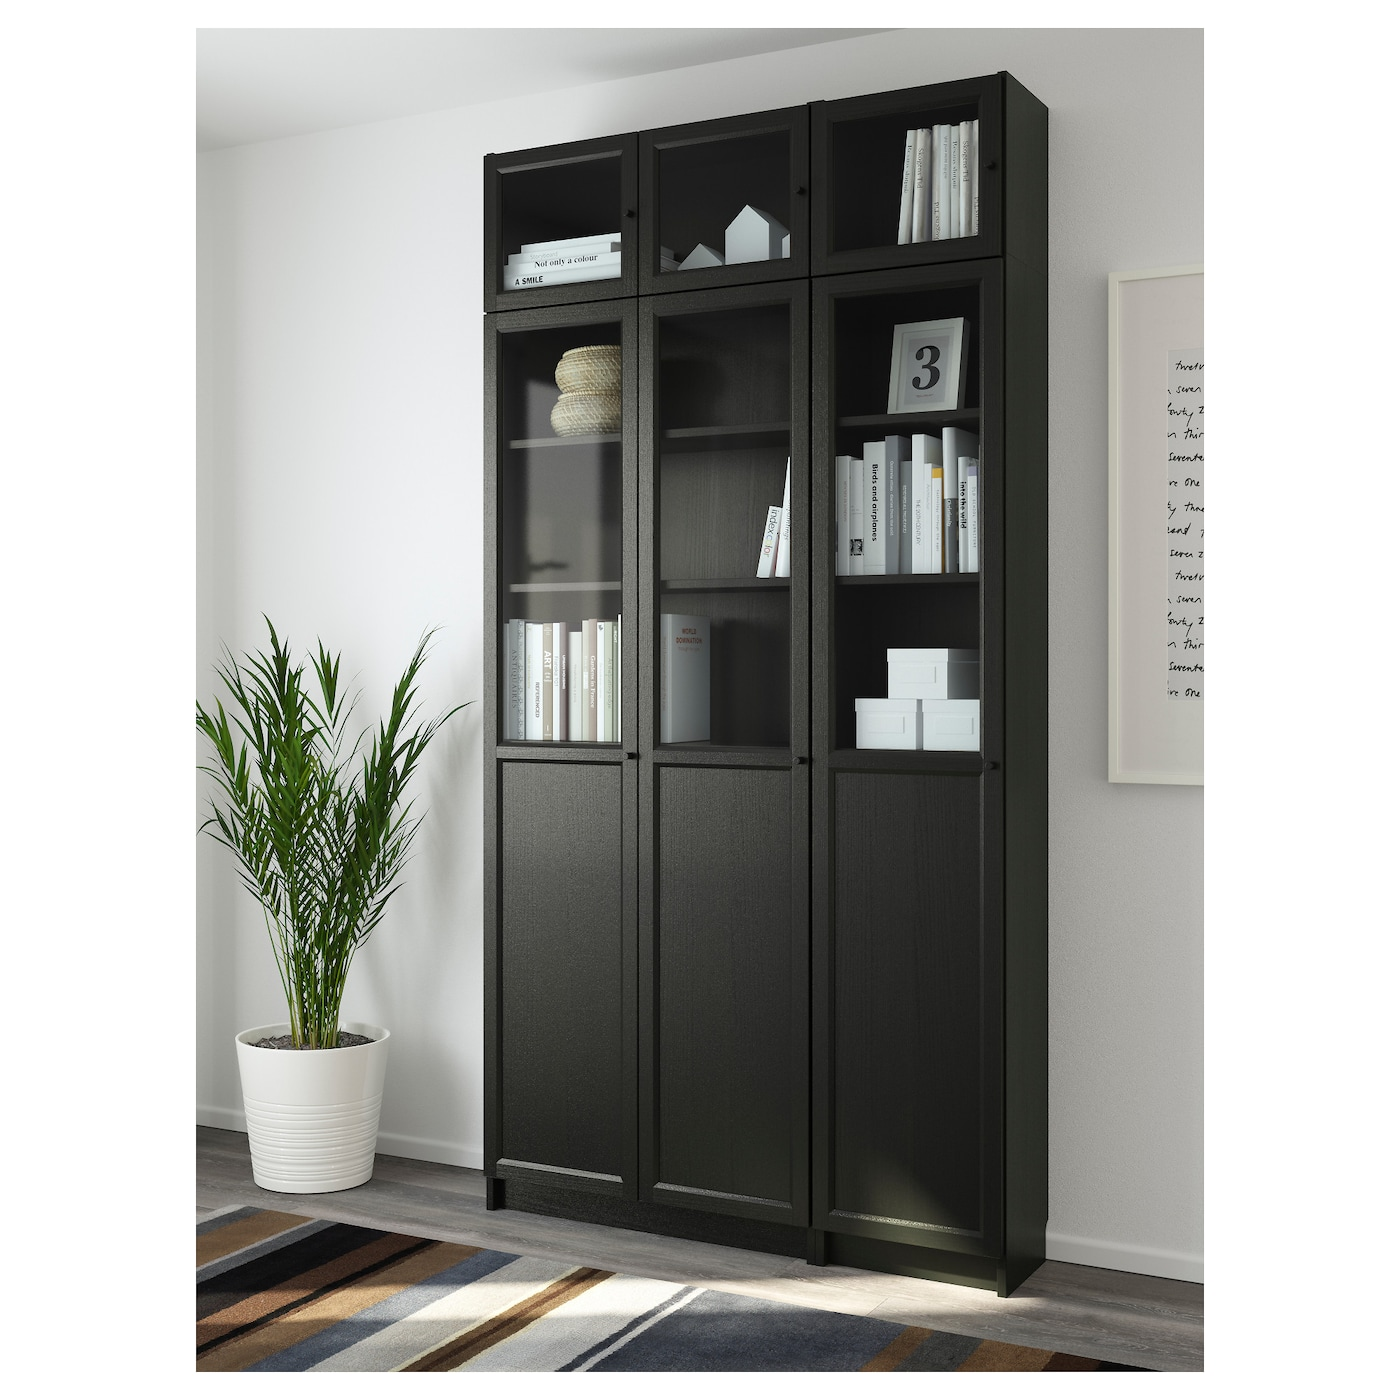 billy oxberg bookcase black brown glass 120 x 237 x 30 cm ikea. Black Bedroom Furniture Sets. Home Design Ideas